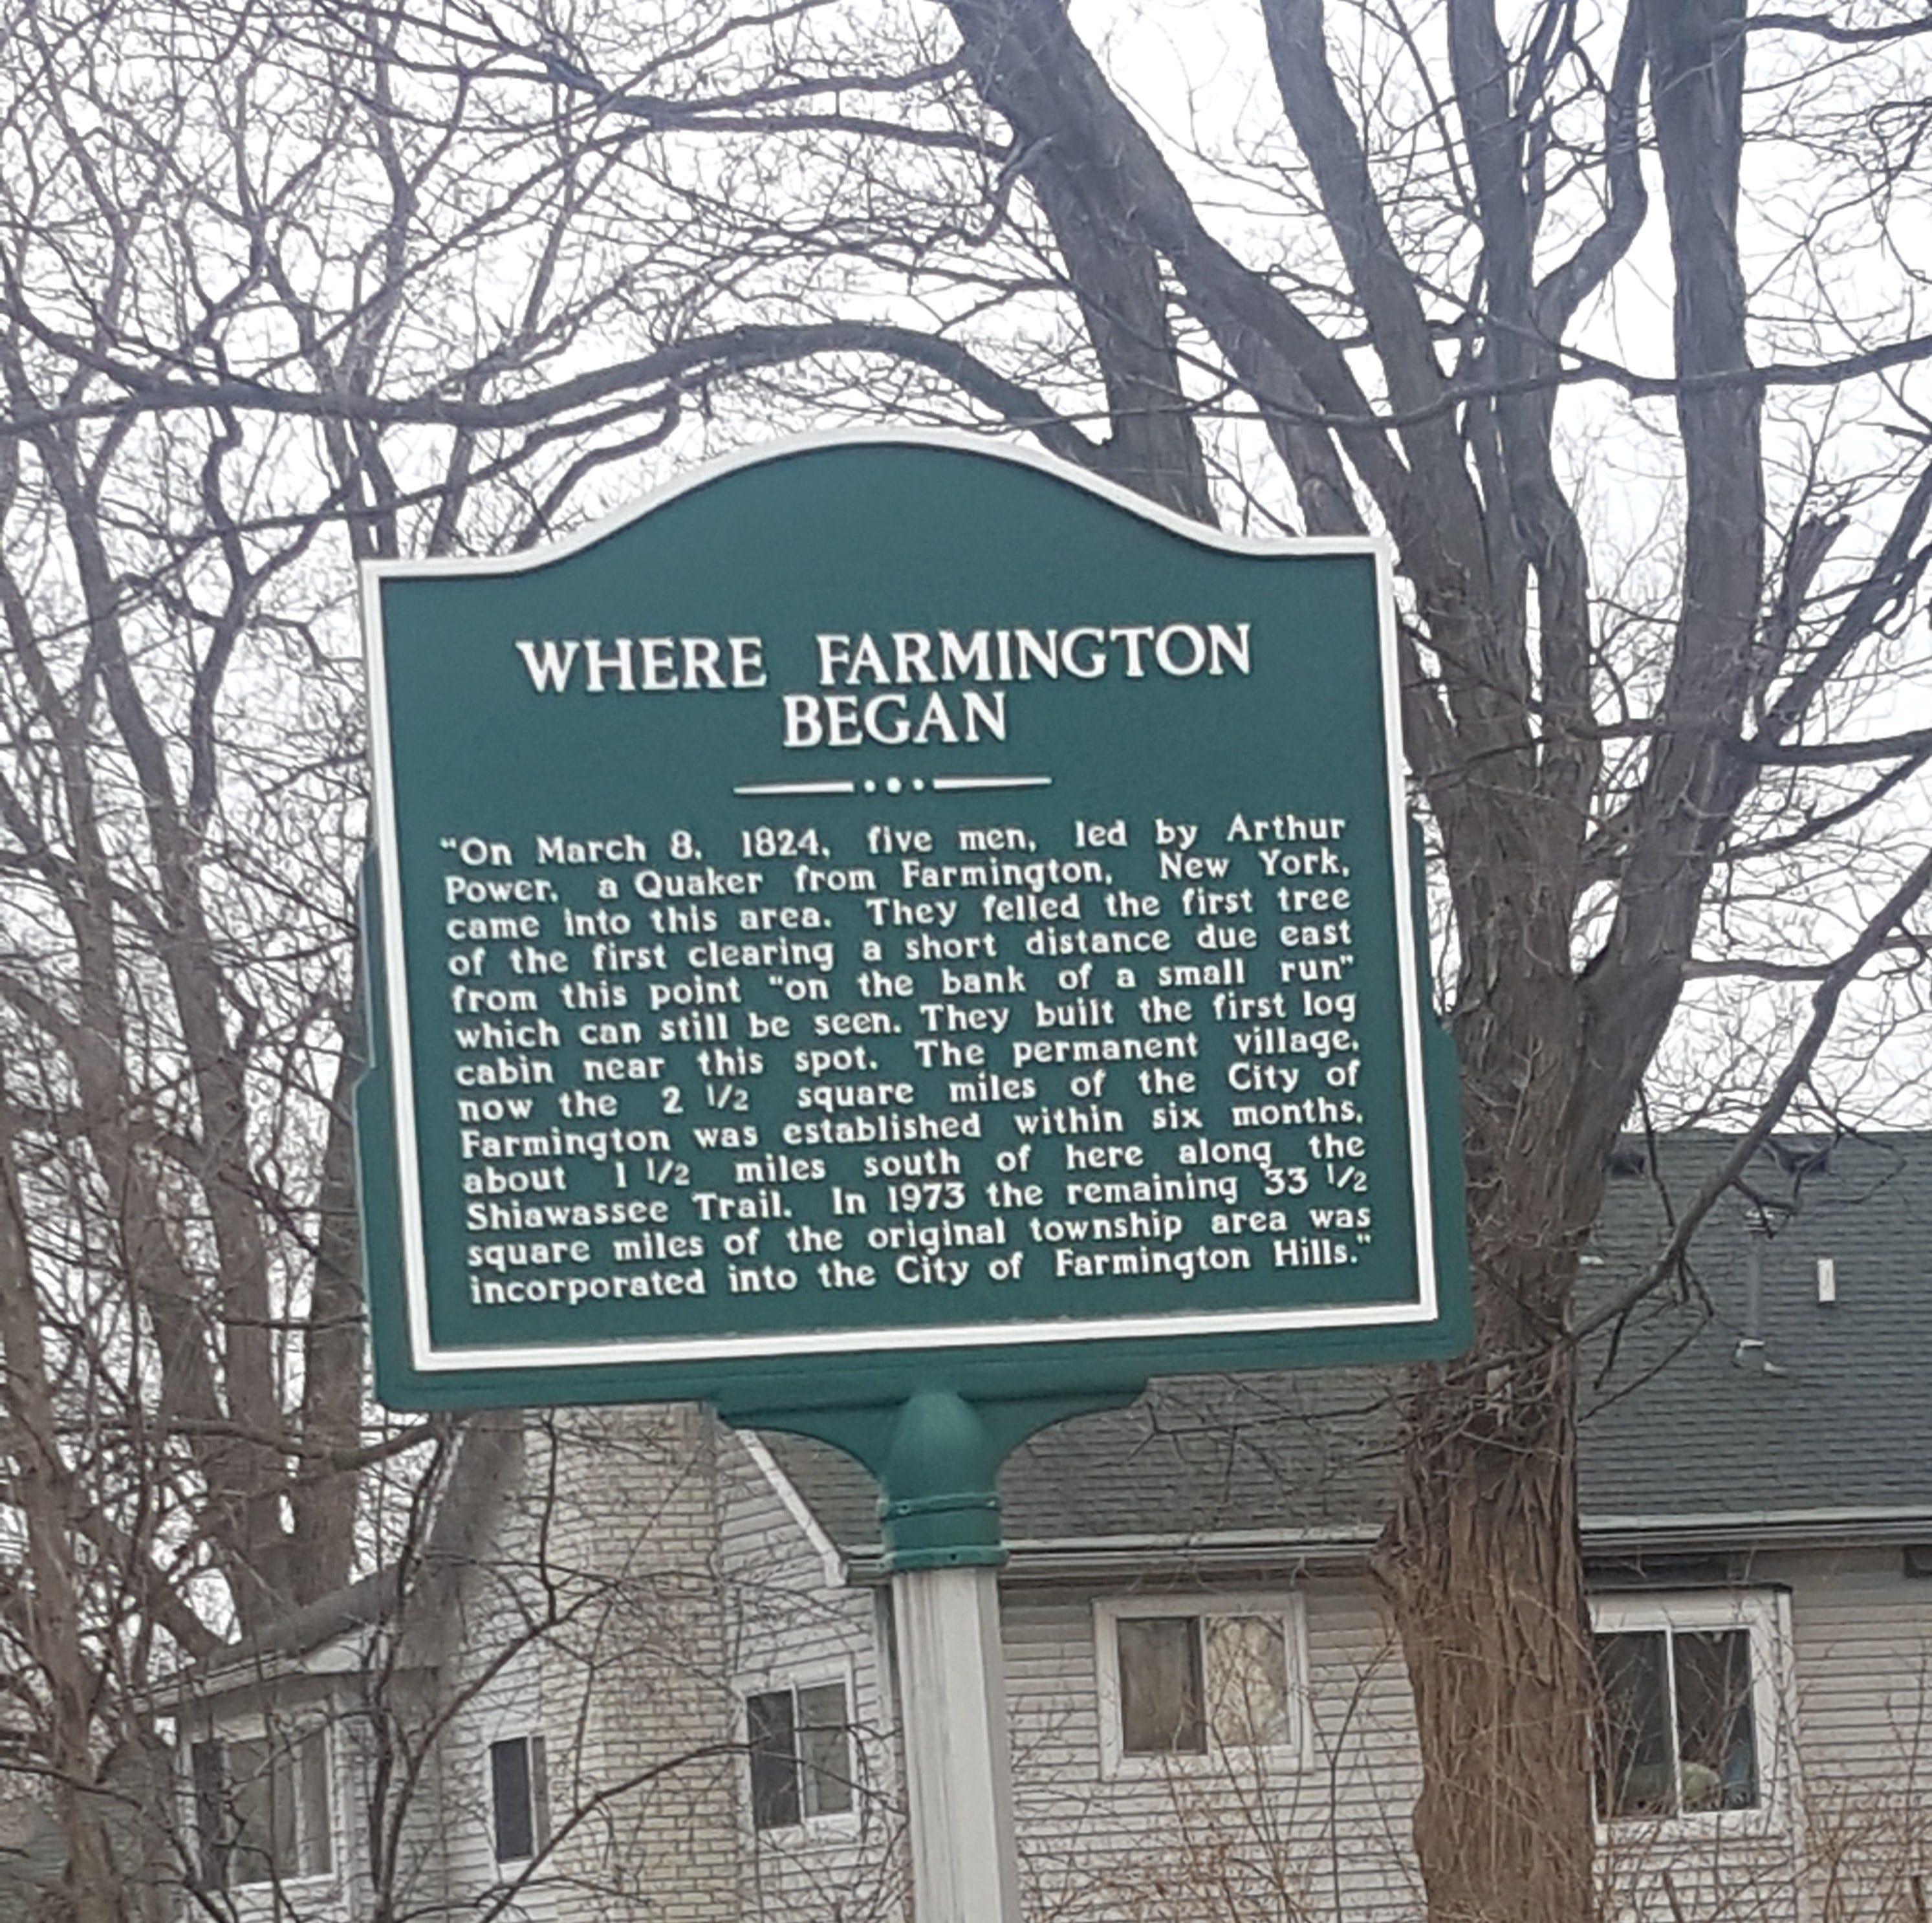 A Brief Look Back: Eight facts about Farmington's 1824 founding